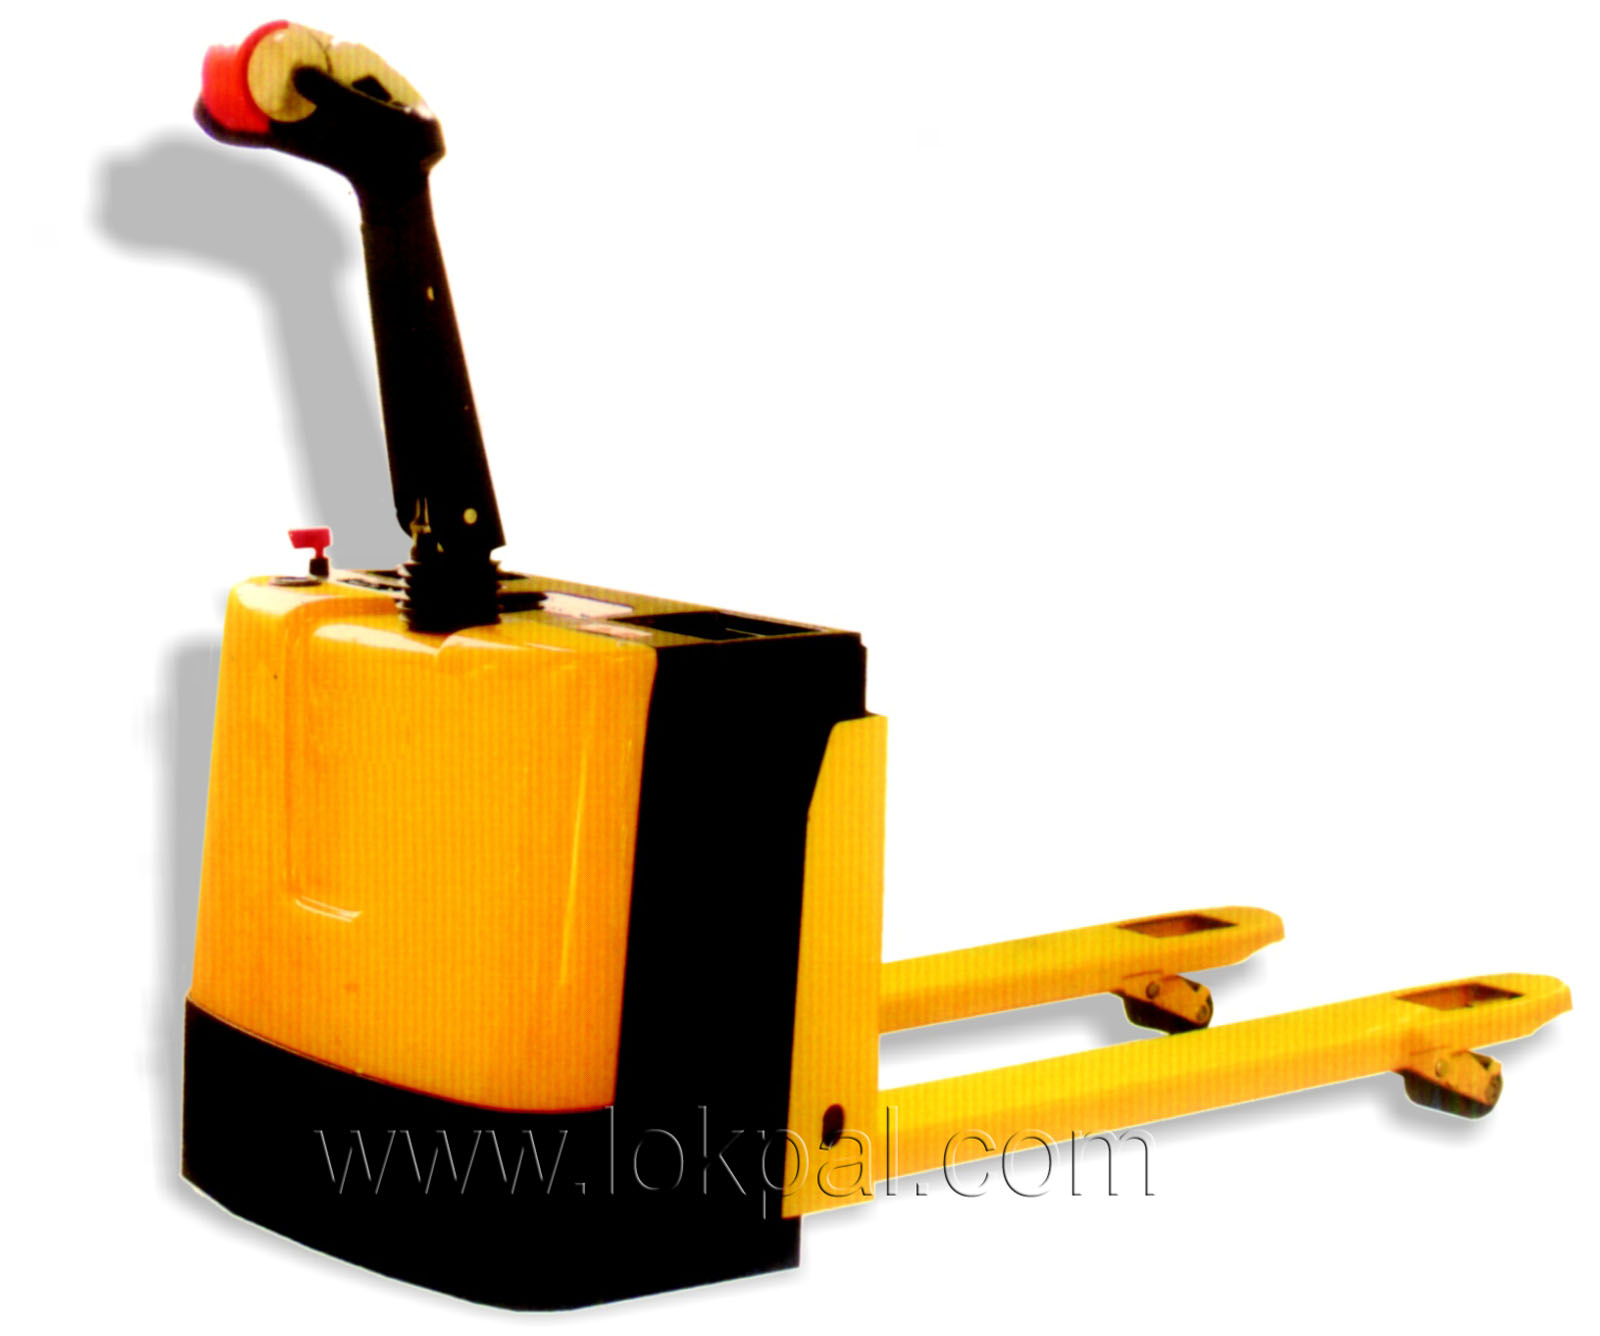 Full Electric Pallet Truck, Full Electric Pallet Truck Dealers, Electric Pallet Truck Manufacturer, Distributor, Electric Pallet Truck Supplier, Wholesaler, Delhi NCR, Noida, India